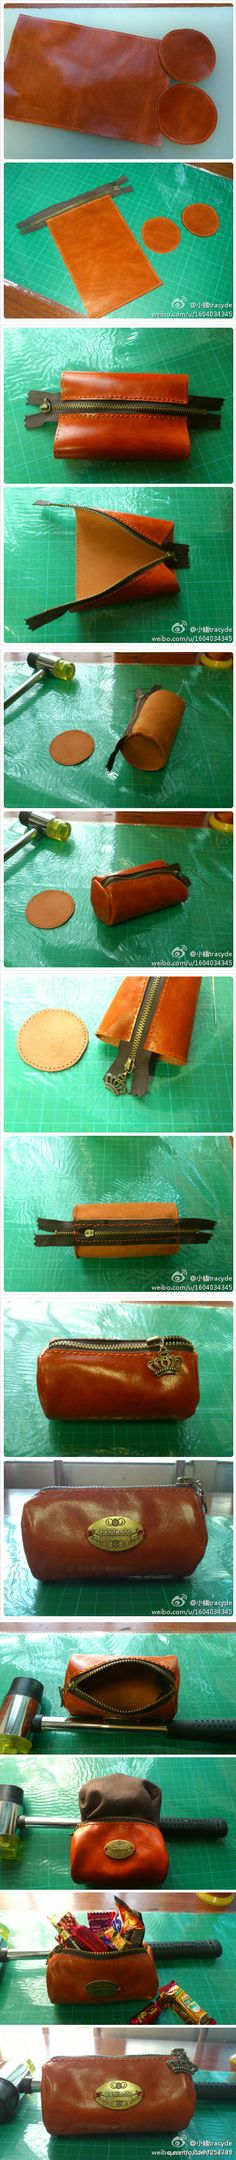 Step by step for an interesting bag. Could be used to make a toiletry bag for the necessities in my backpacking pack.